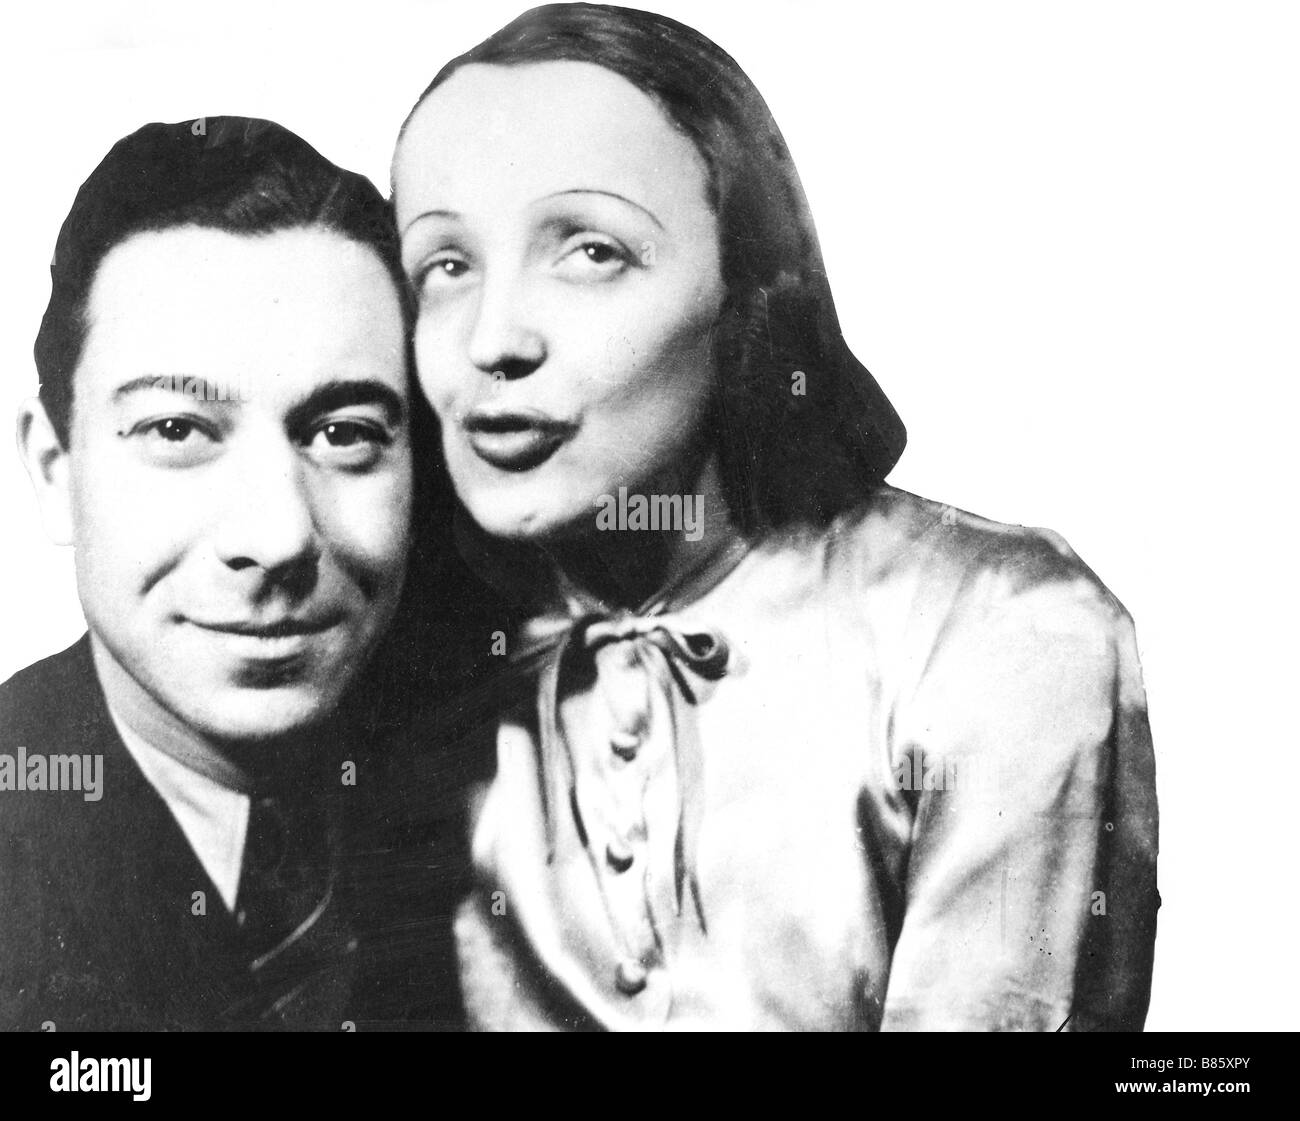 Piaf and Paul Meurisse